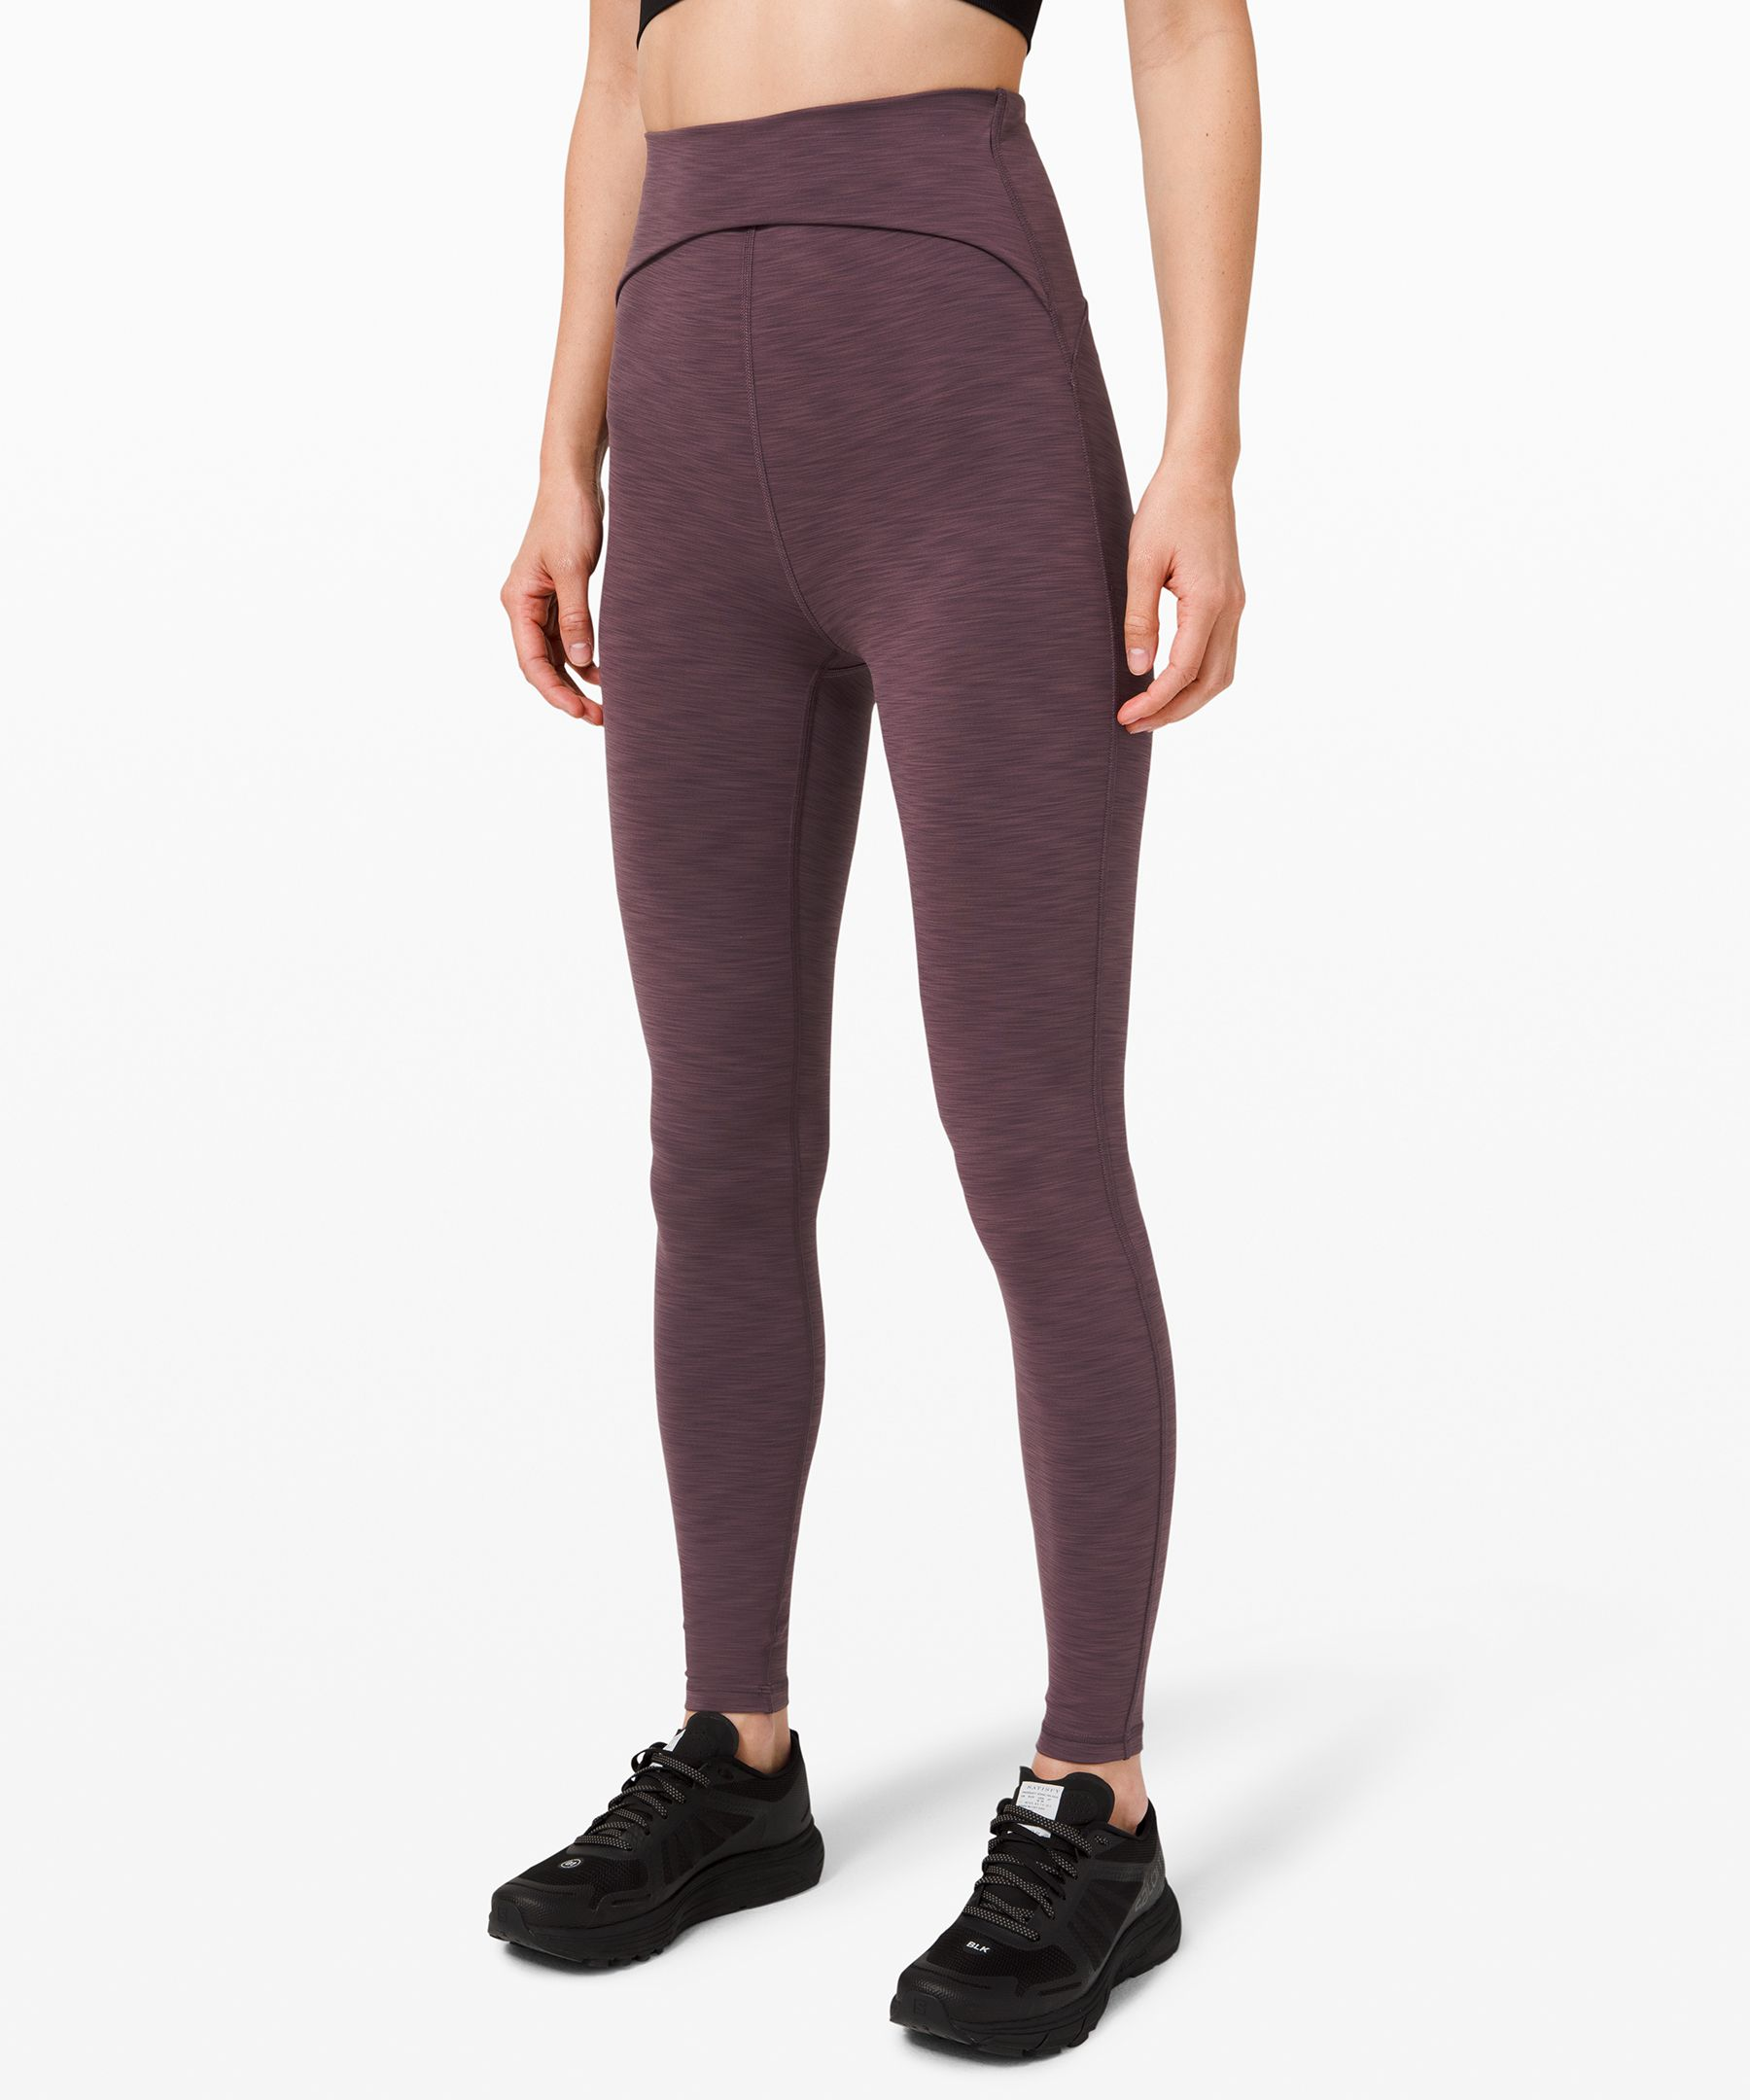 Summon your inner strength in  these tights, which offer cool  coverage for hot workouts in  stuffy studios. We made them  with minimal design lines for  a sleek look.